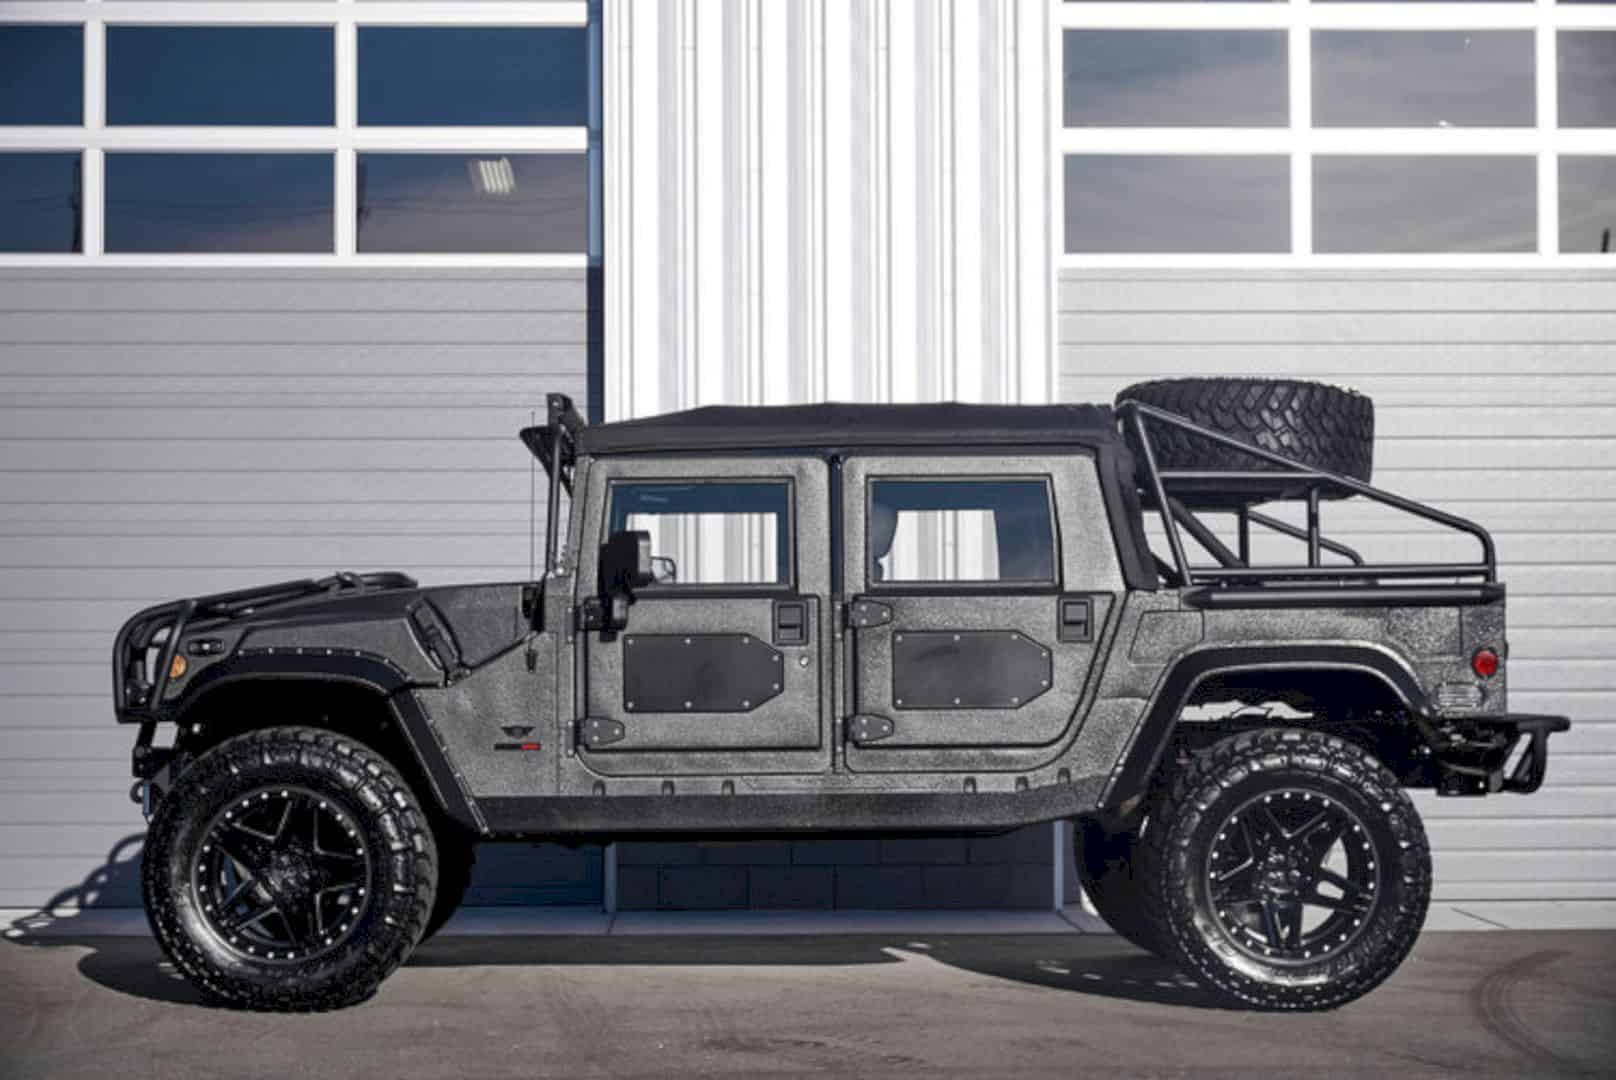 Hummer Models List >> Mil-Spec Automotive Hummer H1 Launch Edition – Unleash The Robust Beast | Design Listicle